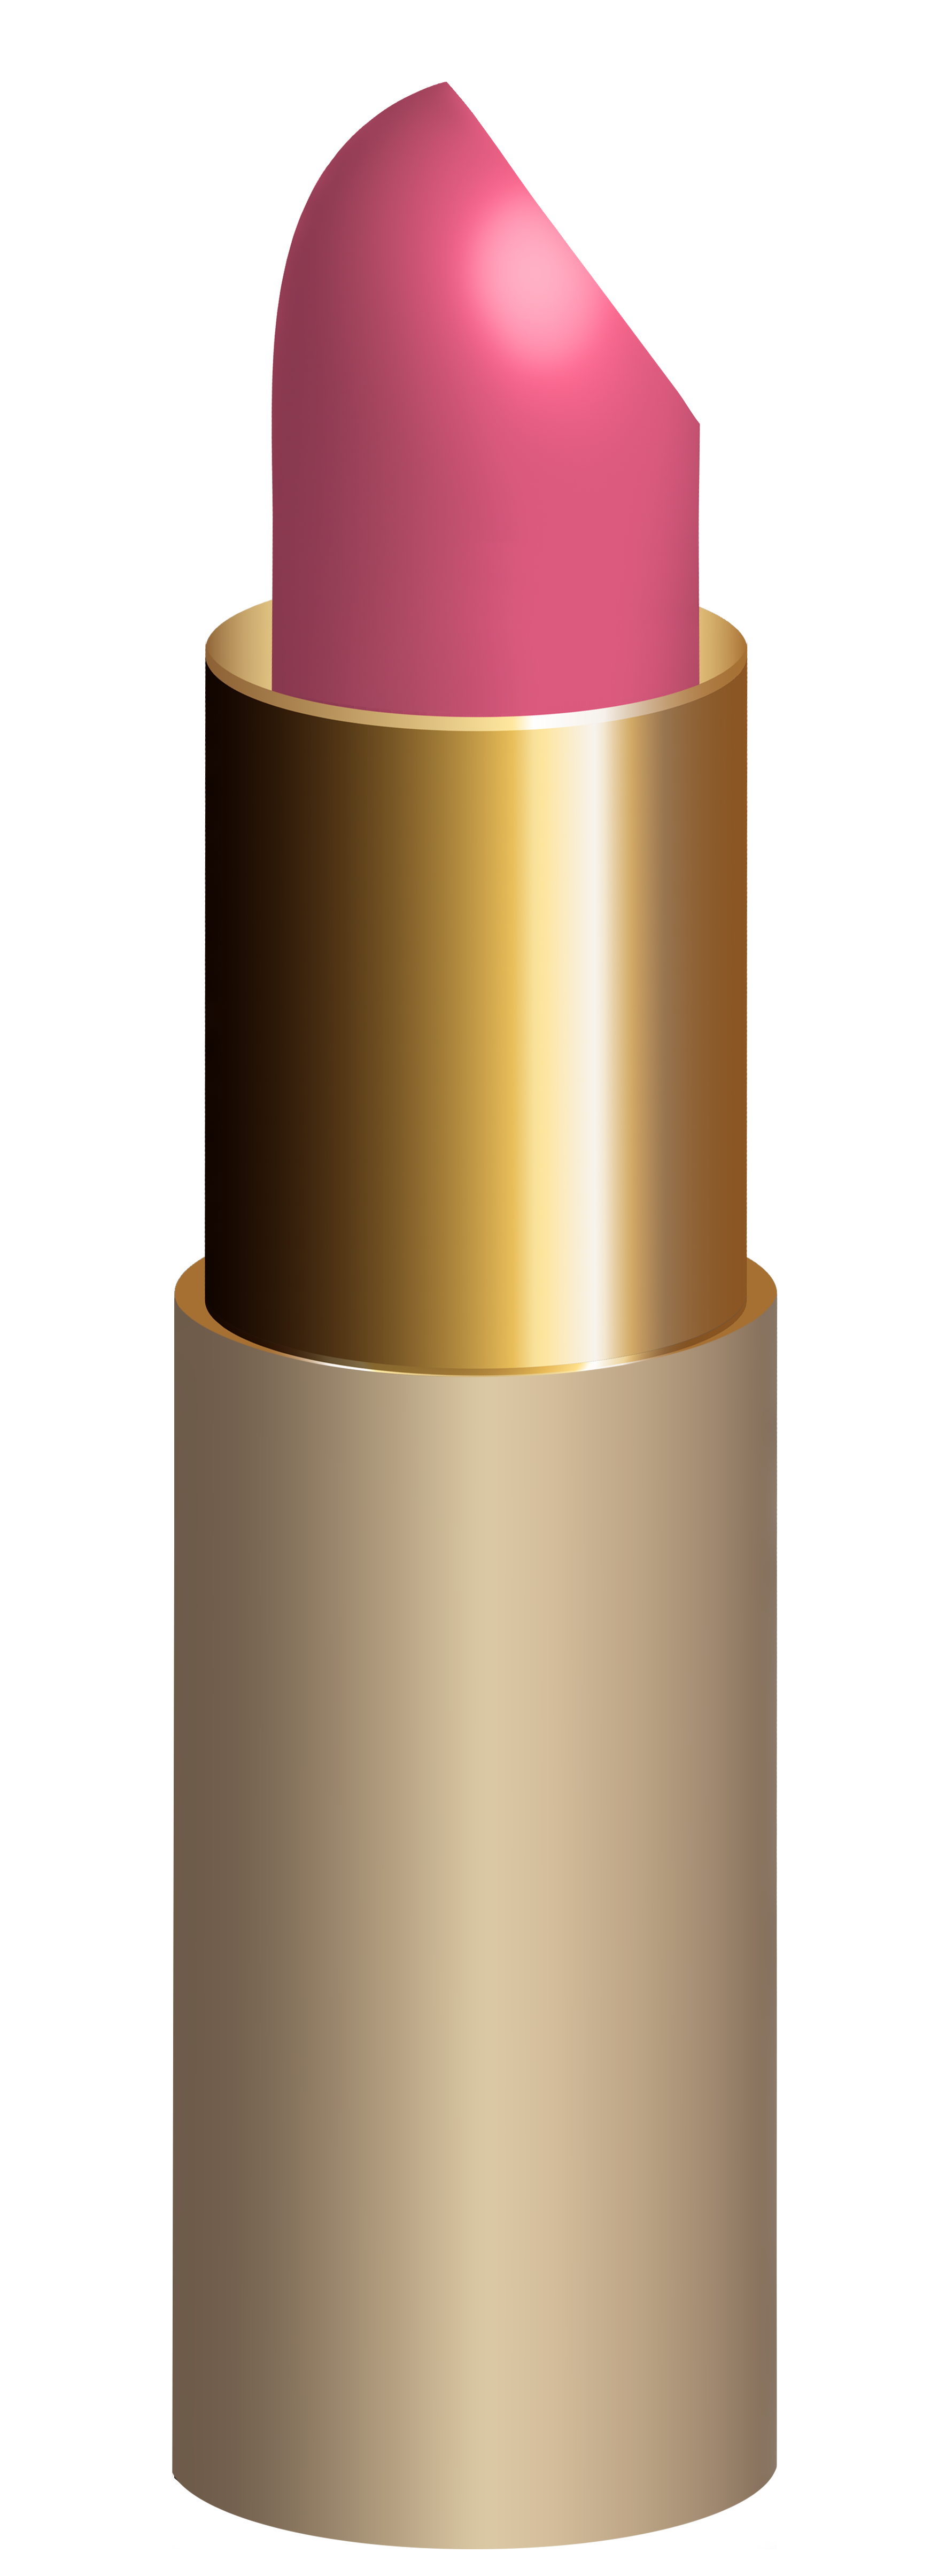 collection of light. Girly clipart lipstick